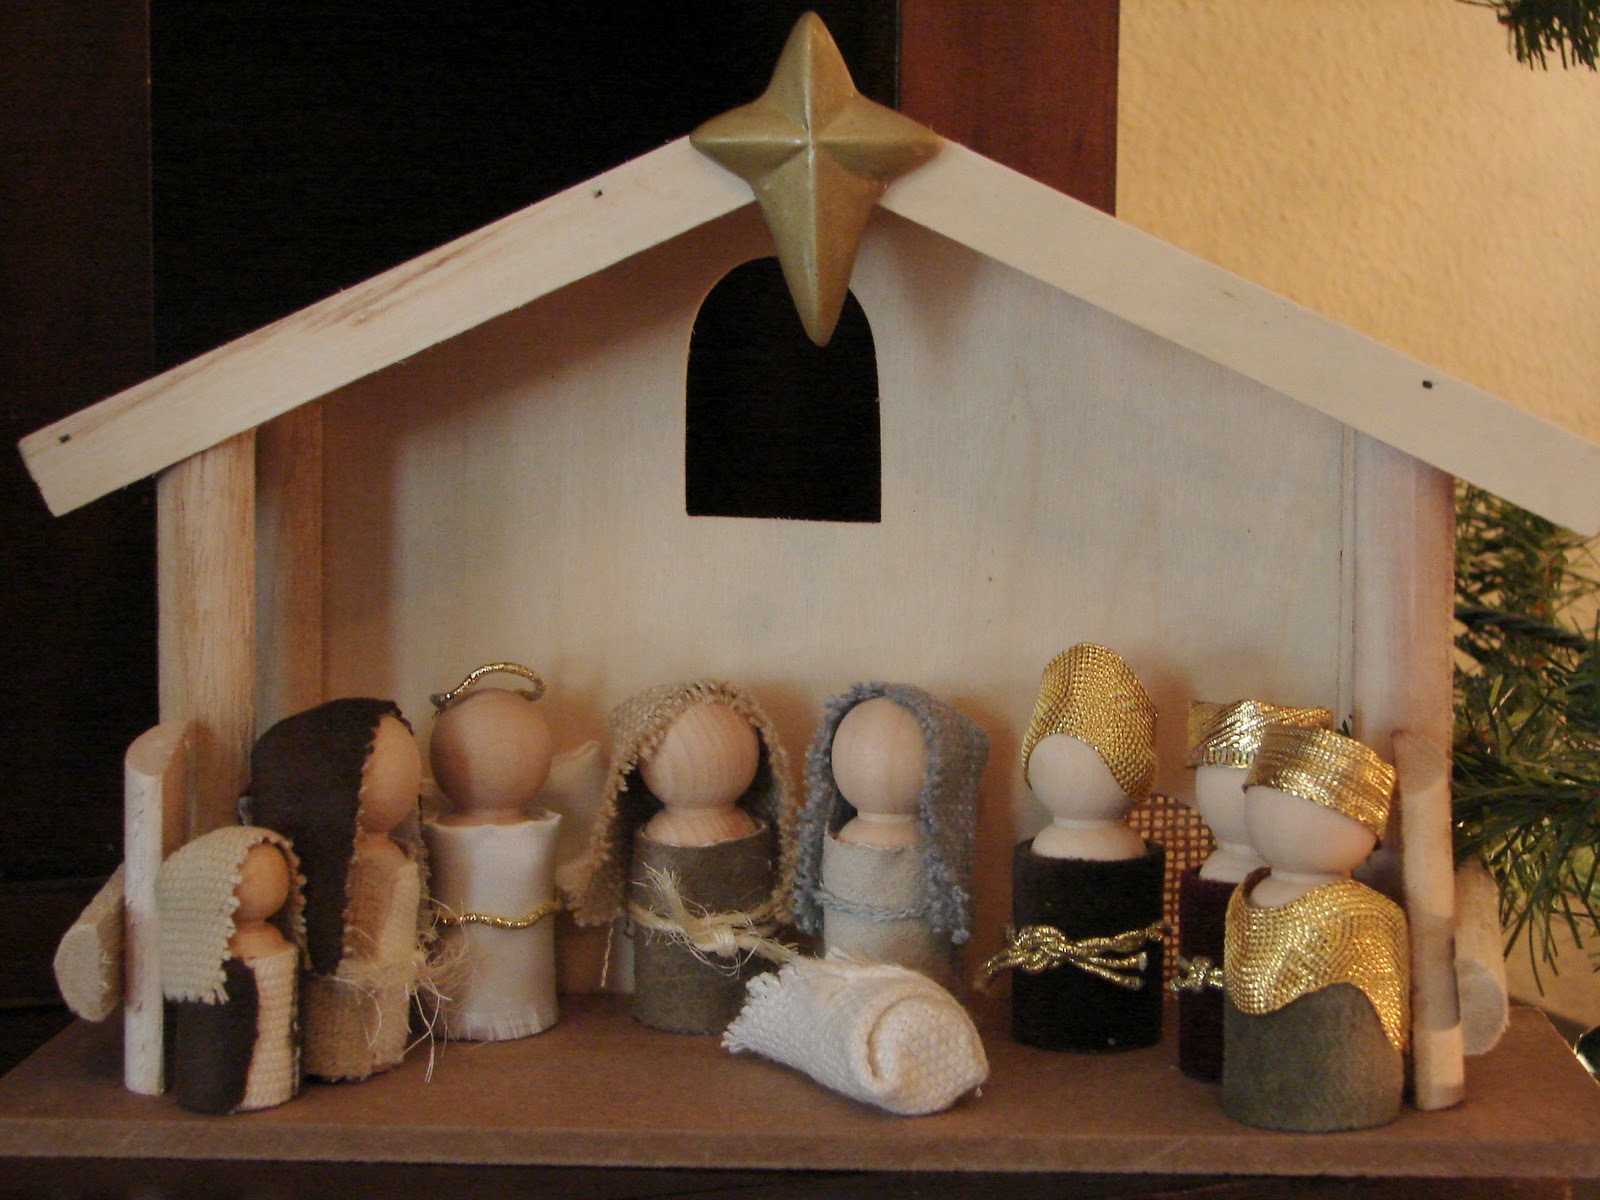 Little inspirations wooden doll nativity wednesday november 30 2011 solutioingenieria Choice Image